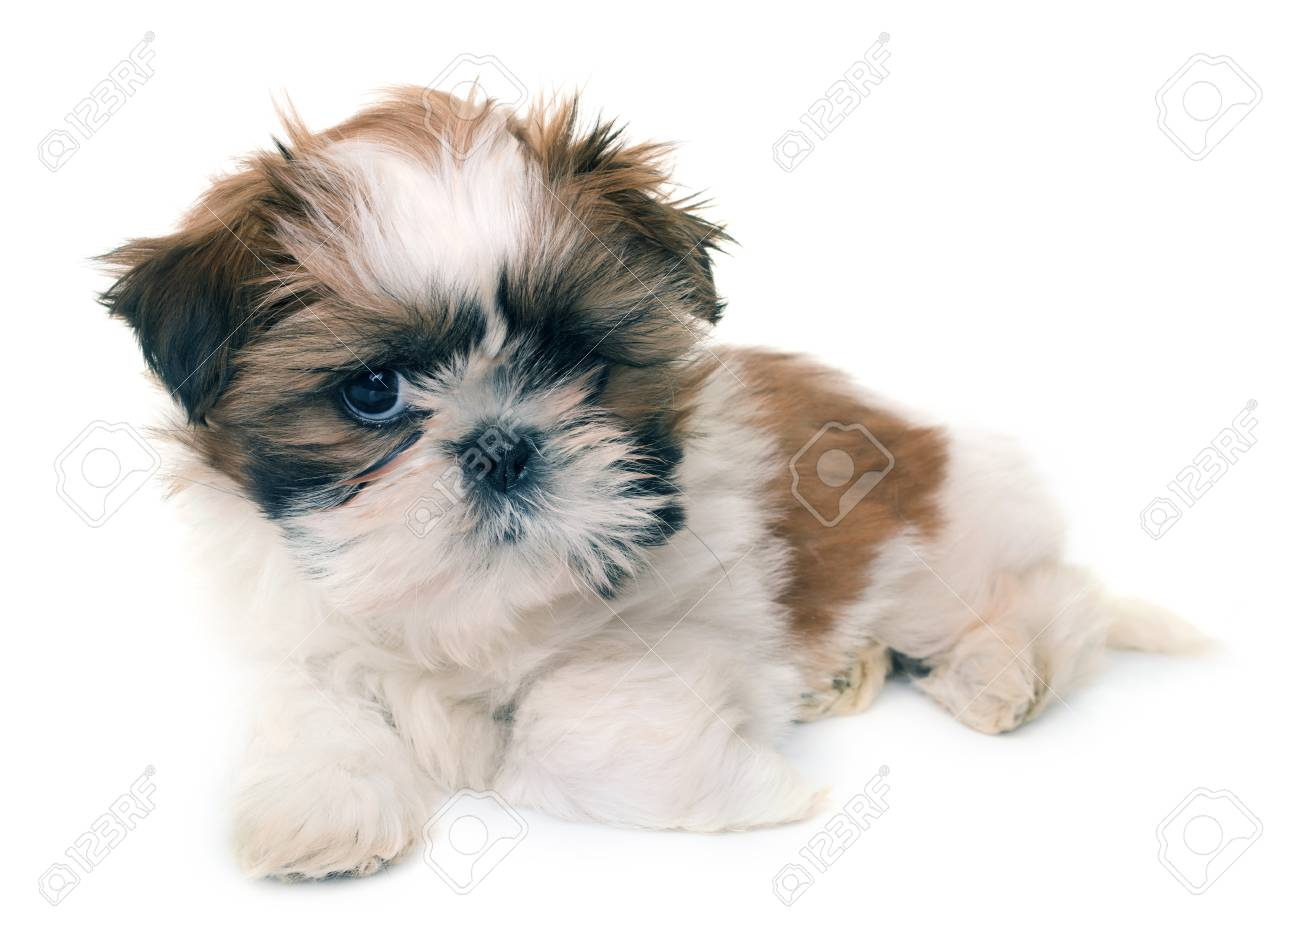 Shih Tzu Puppy In Front Of White Background Stock Photo Picture And Royalty Free Image Image 89308617